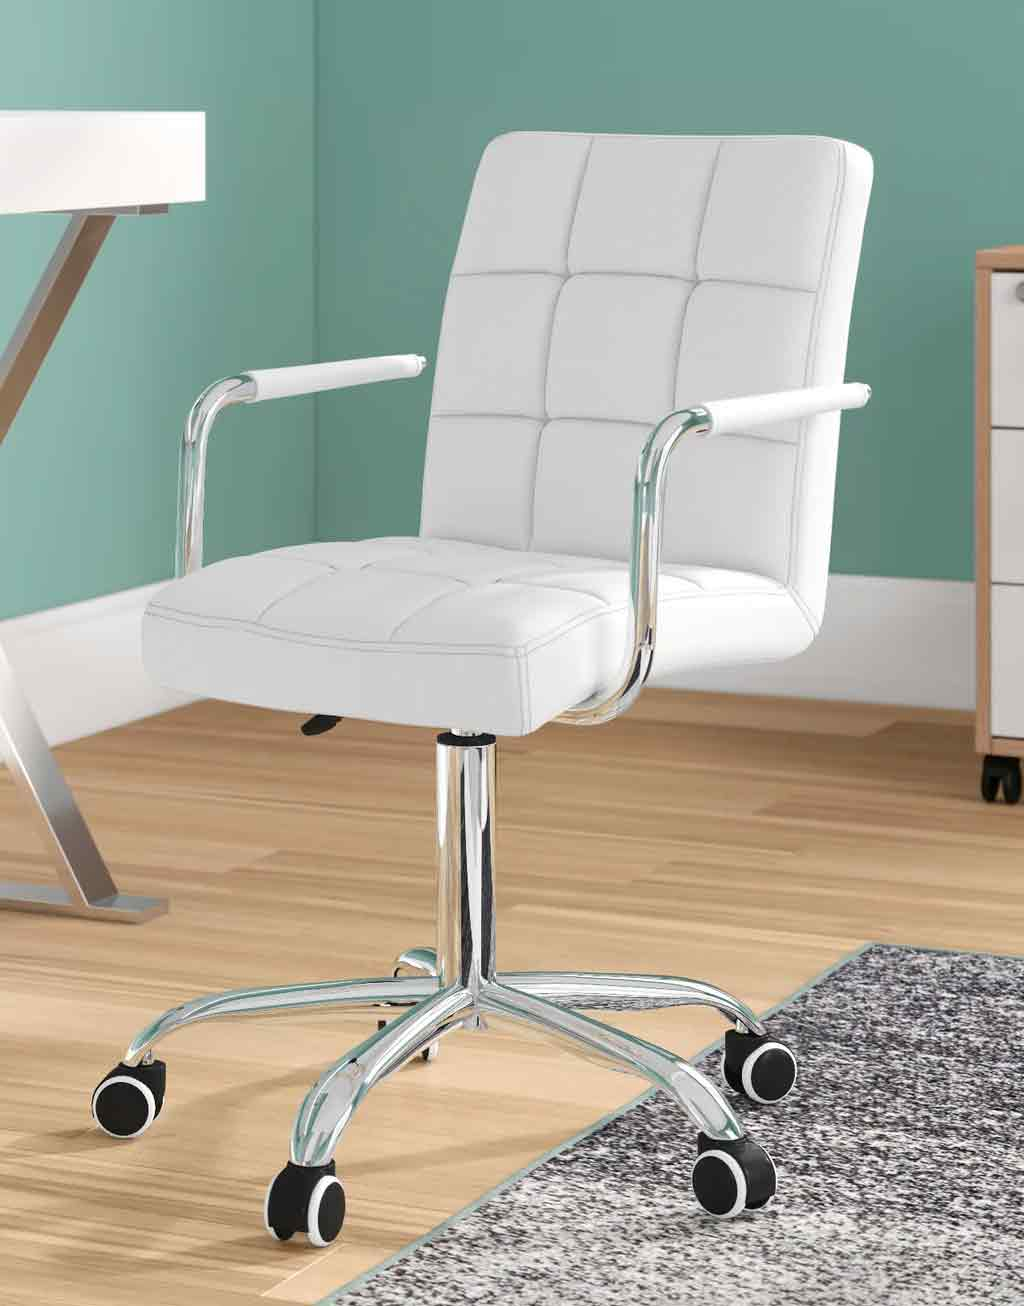 Best Chairs for Studying 7